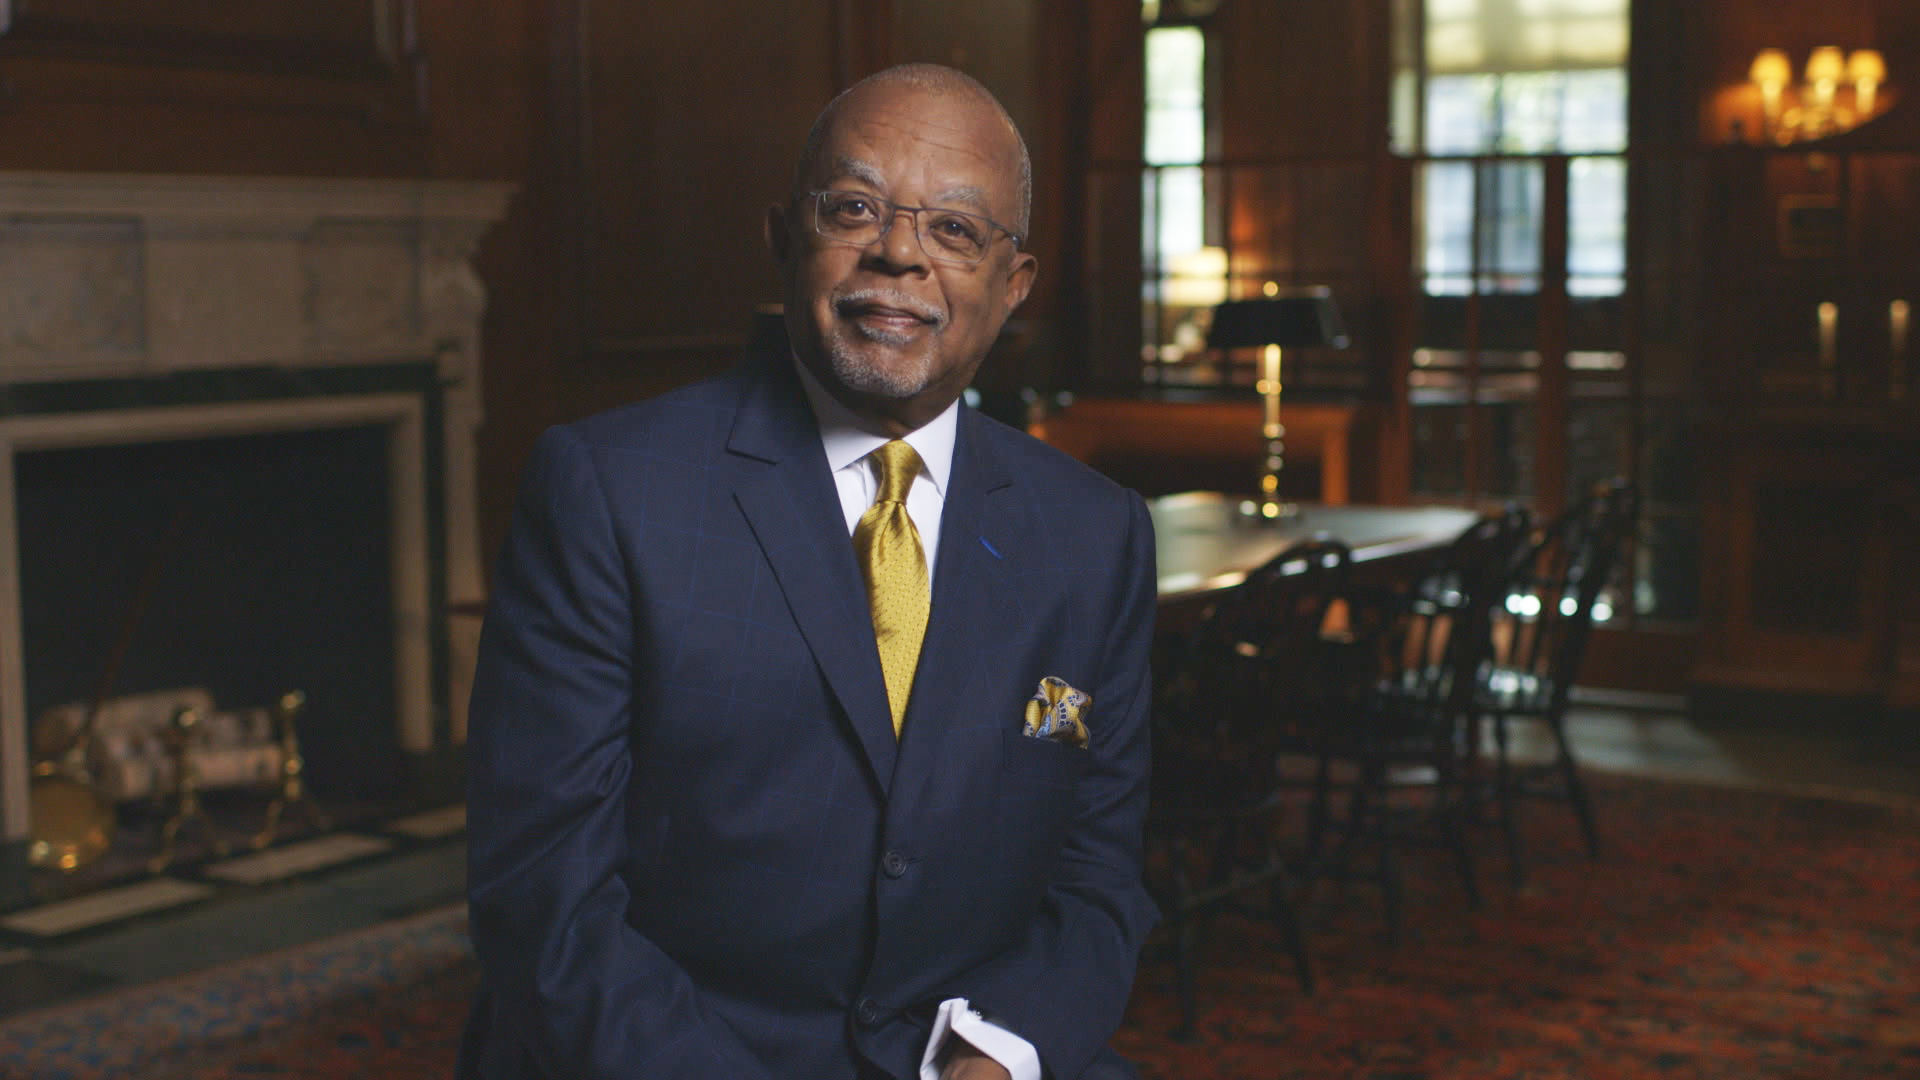 About Henry Louis Gates Jr About Finding Your Roots